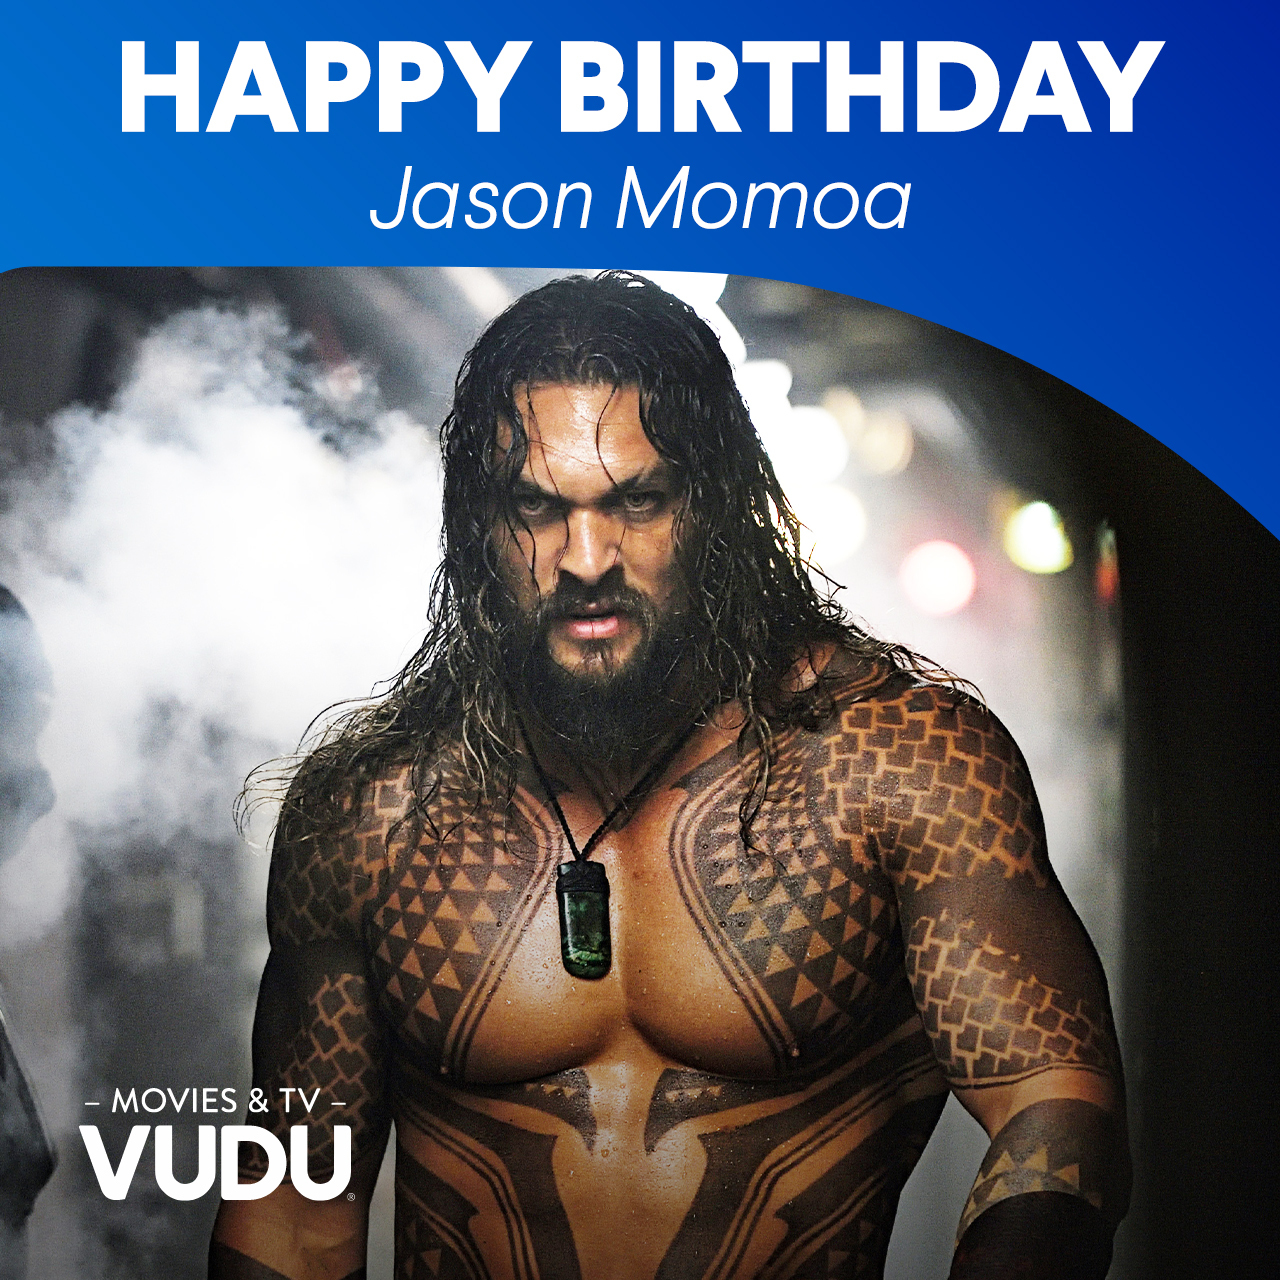 Happy Birthday Jason Momoa! What was your favorite scene from Aquaman?!